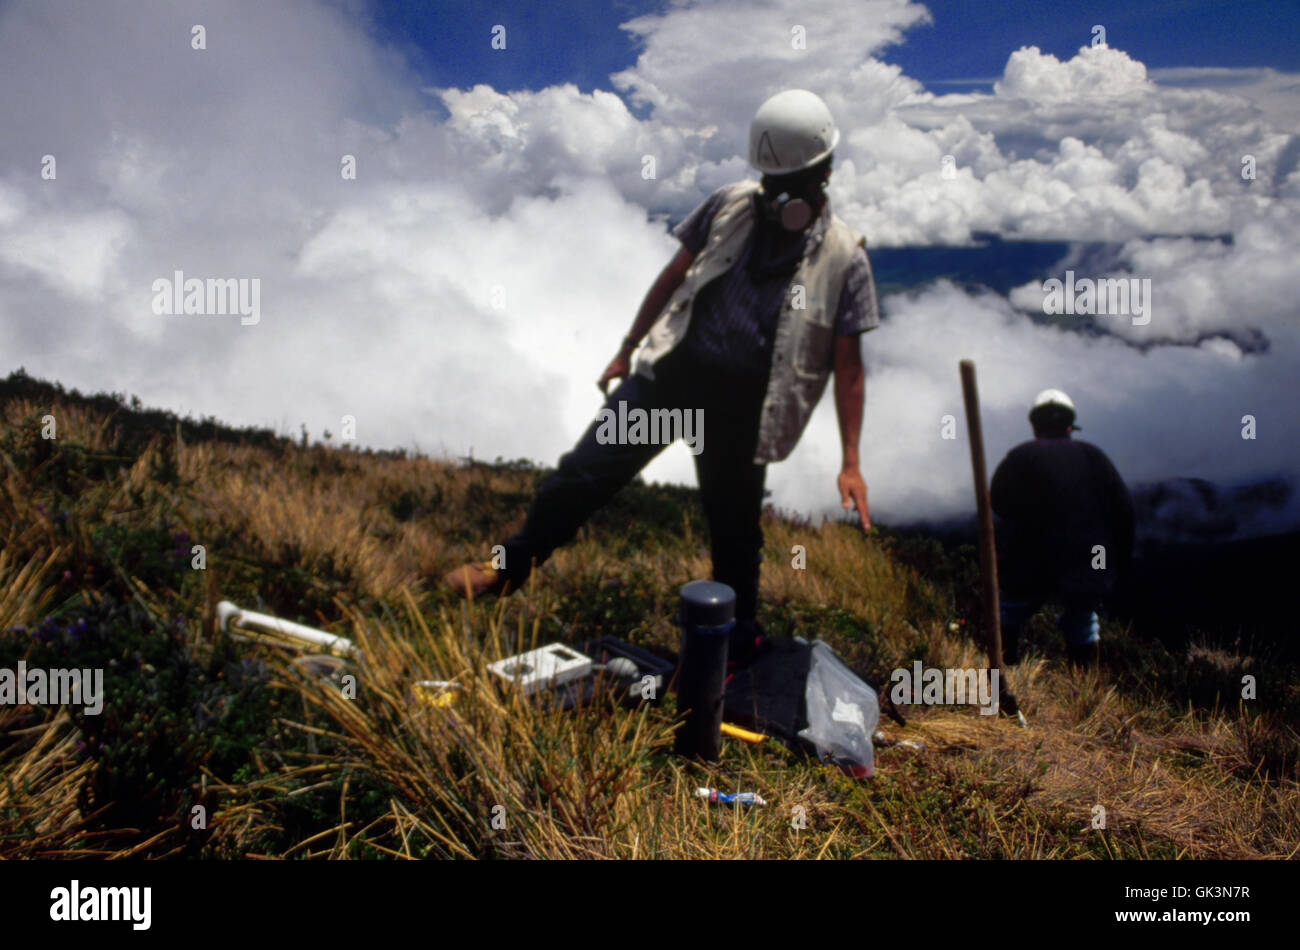 ca. 1980-1995, Pasto, Colombia --- A volcanologist measures the radon gas levels of Galeras volcano, Pasto, Colombia. - Stock Image